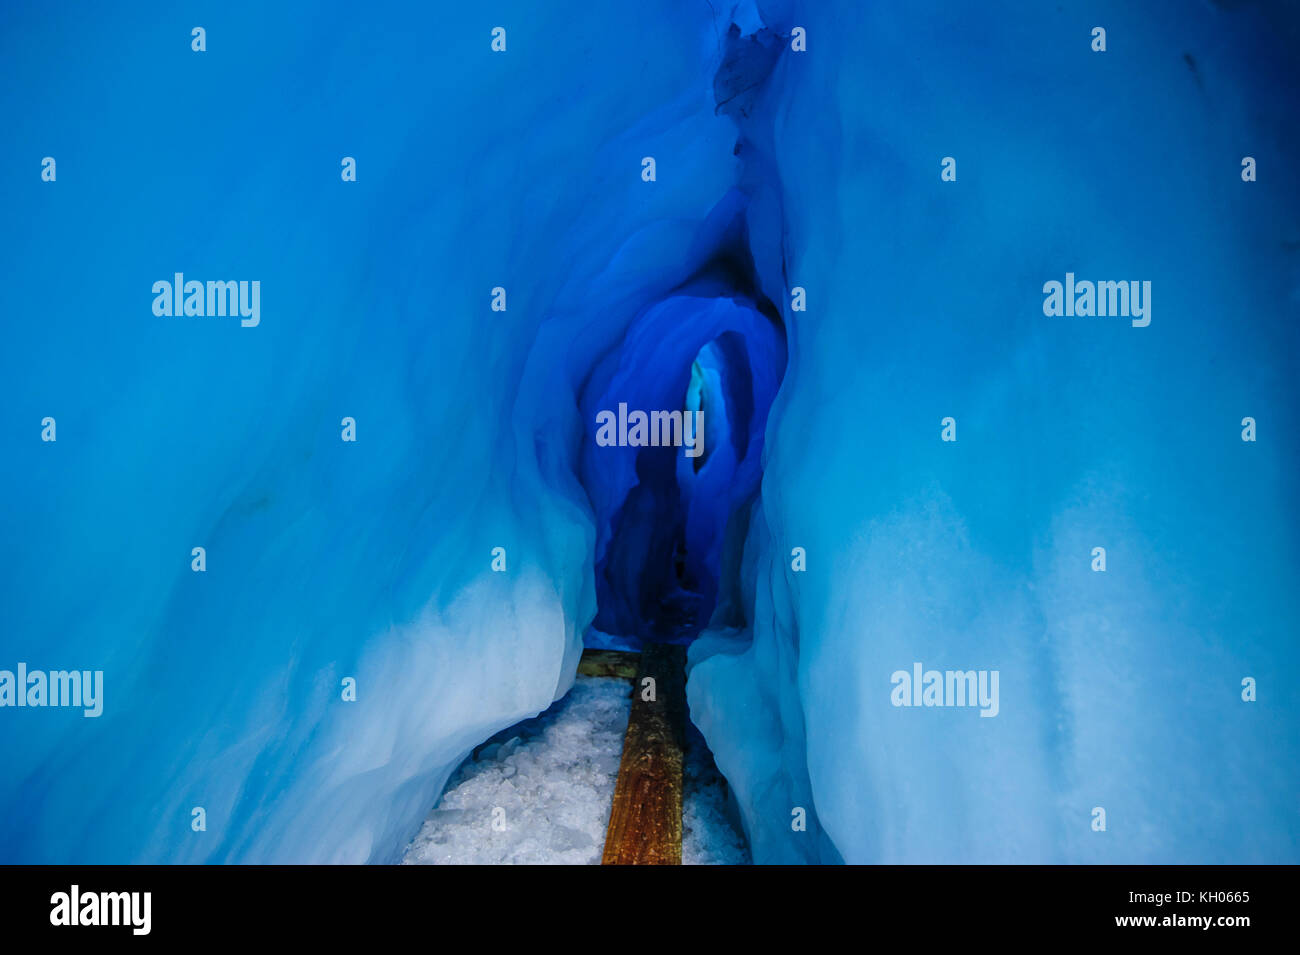 Very bluie ice in an Ice cave in the Fox Glacier, South Island, New Zealand Stock Photo